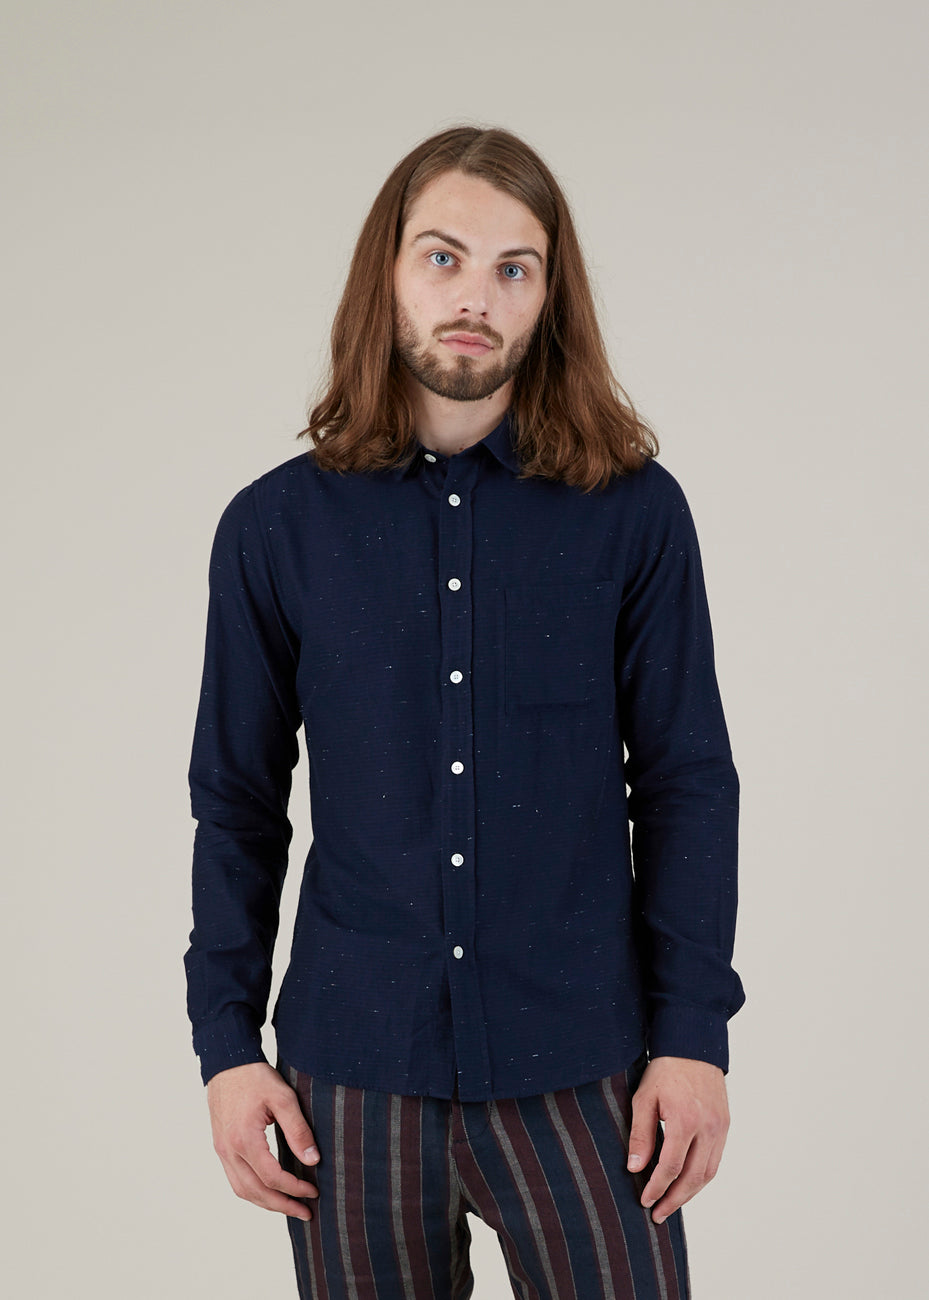 Commune de Paris Rossel Button-Up Shirt